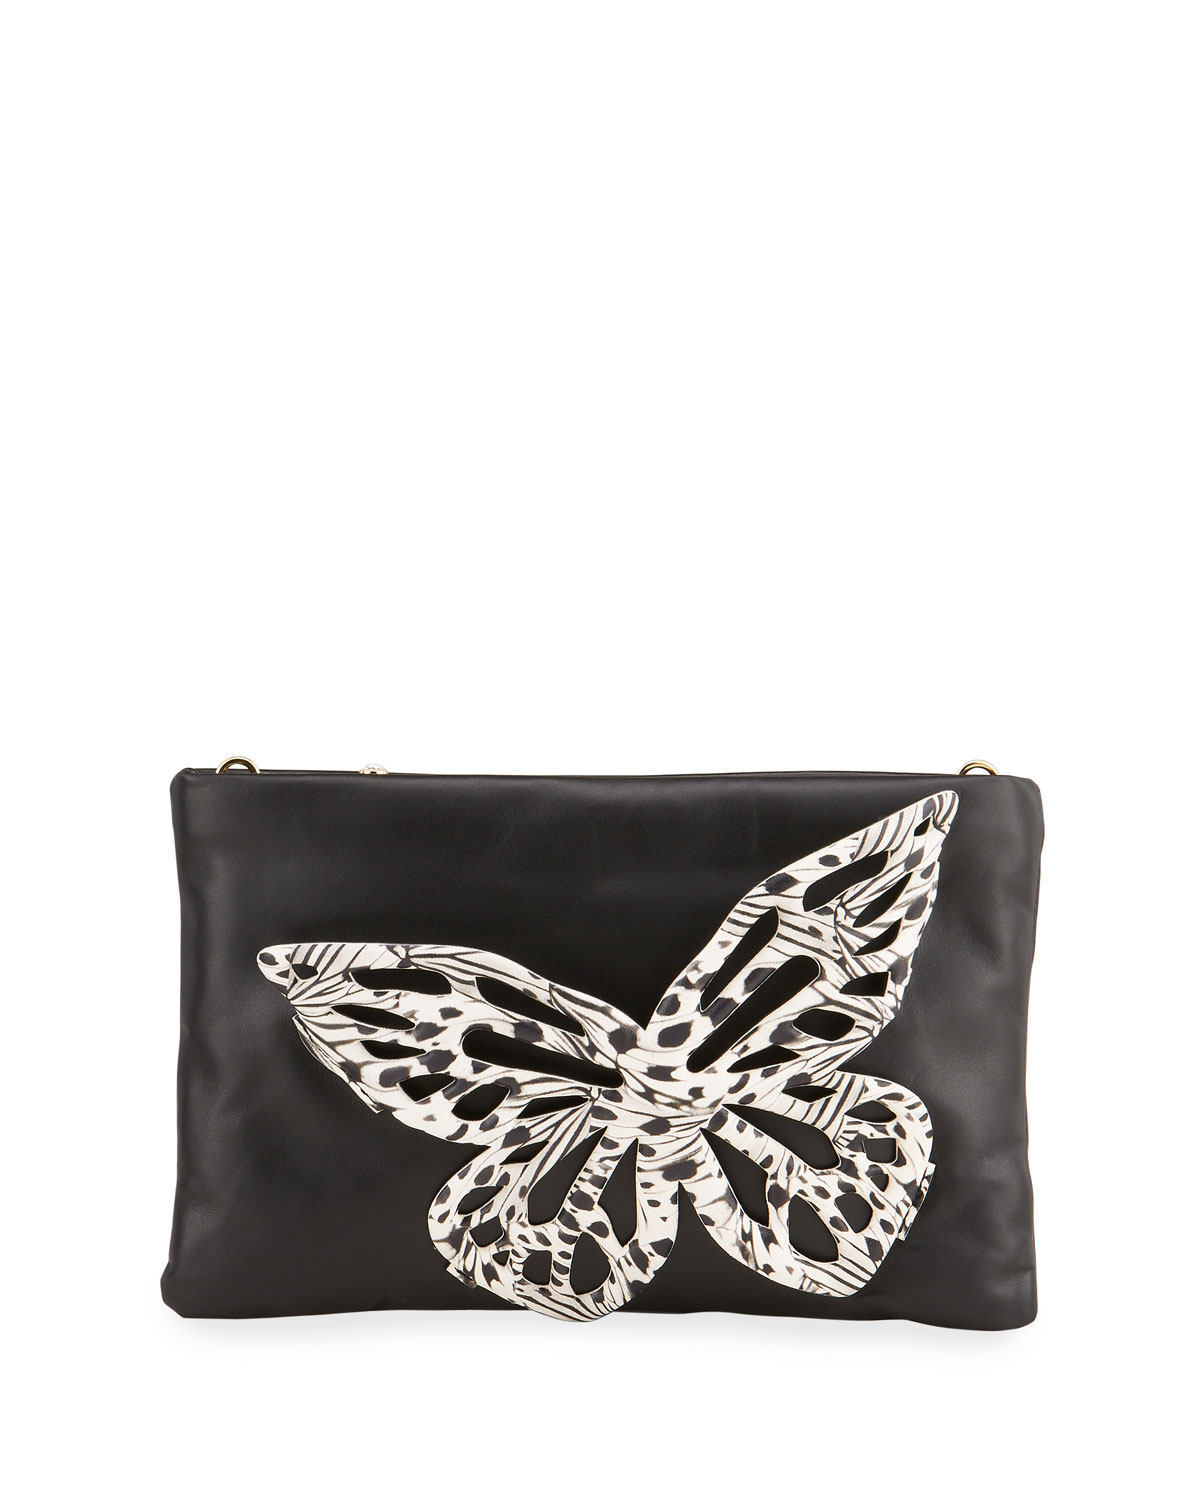 Sophia Webster Clutches FLOSSY BUTTERFLY LEATHER CLUTCH BAG